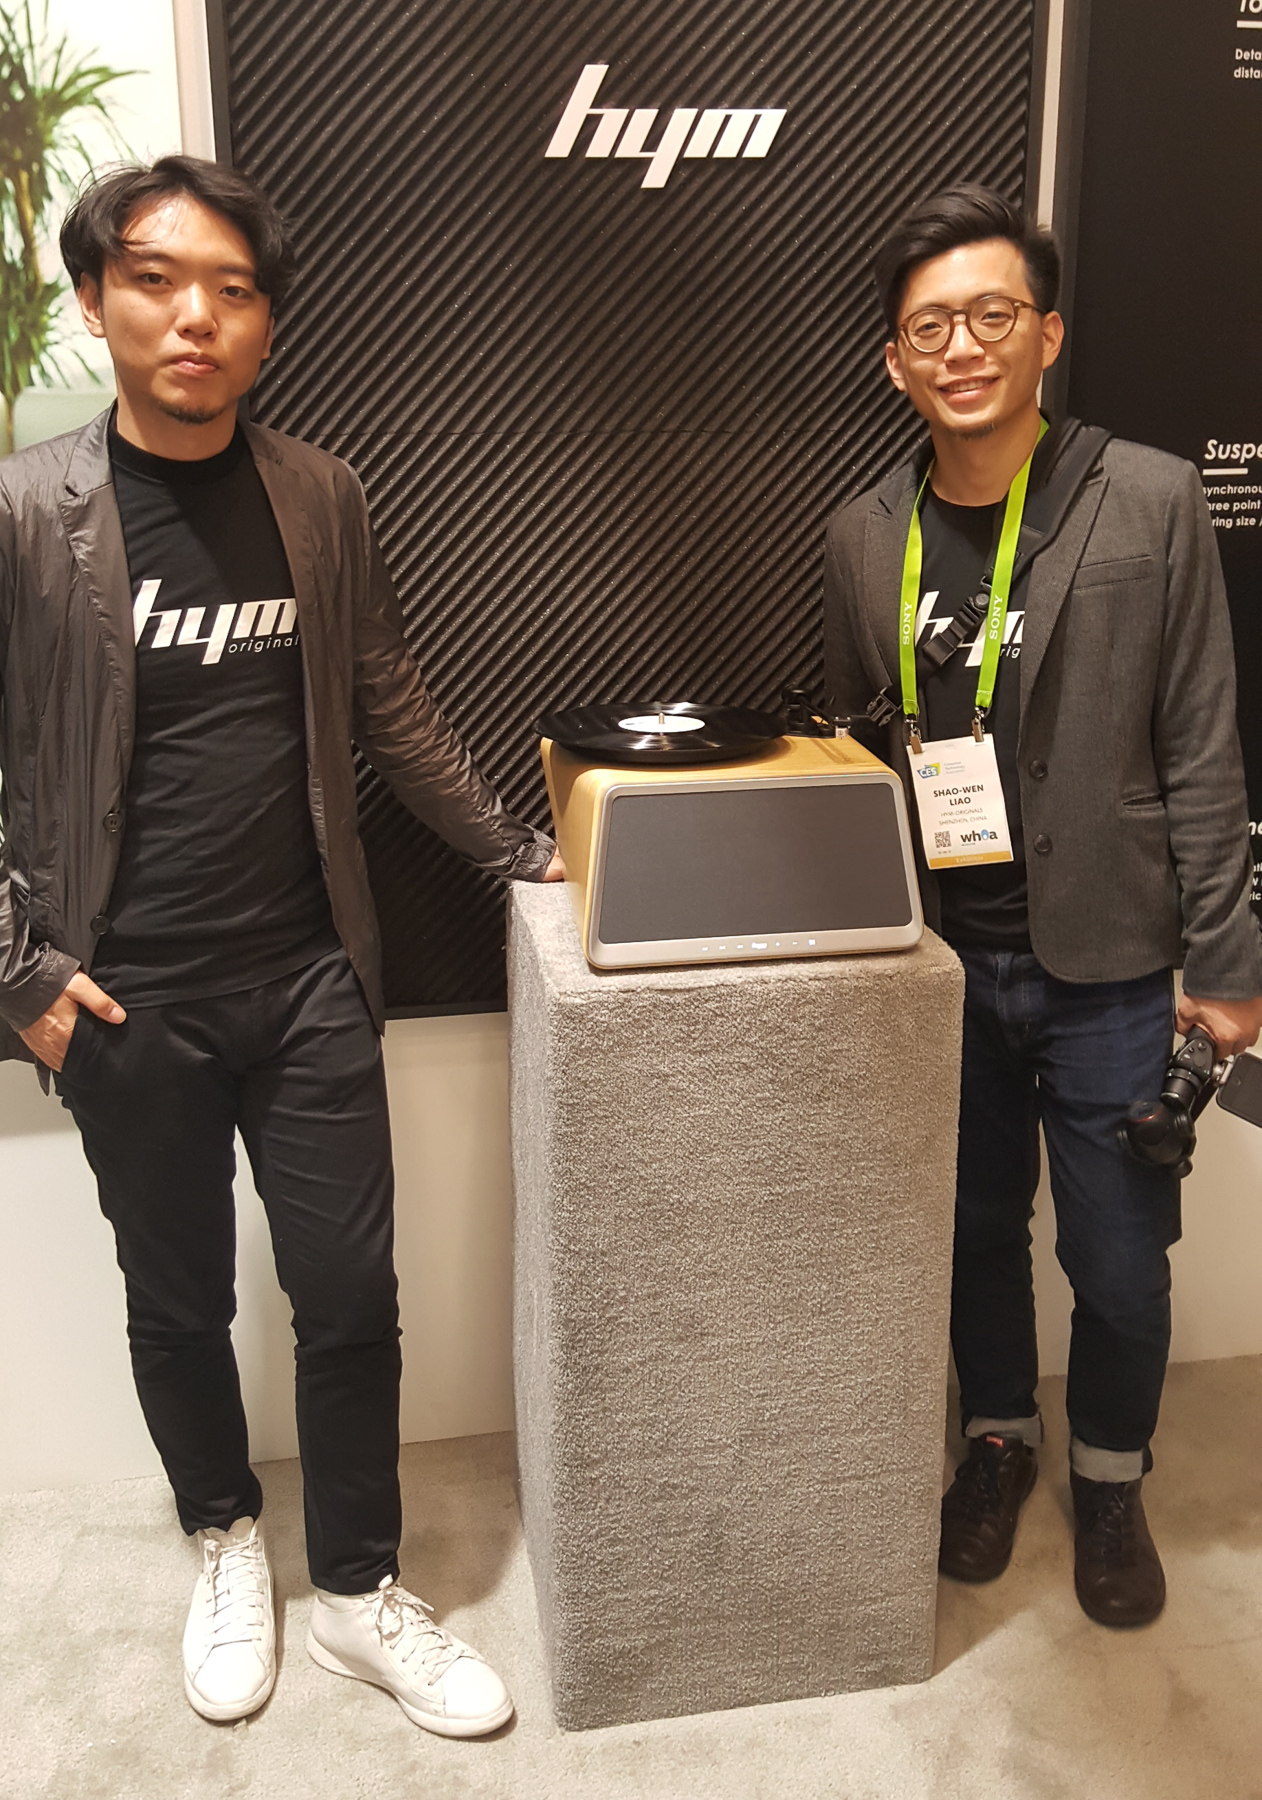 2018 Welcomes Entrepreneurs Back to the CES on Wednesday January 10, 2018 in Sin City Las Vegas with Globe Trotting Entrepreneur Michael S Novilla